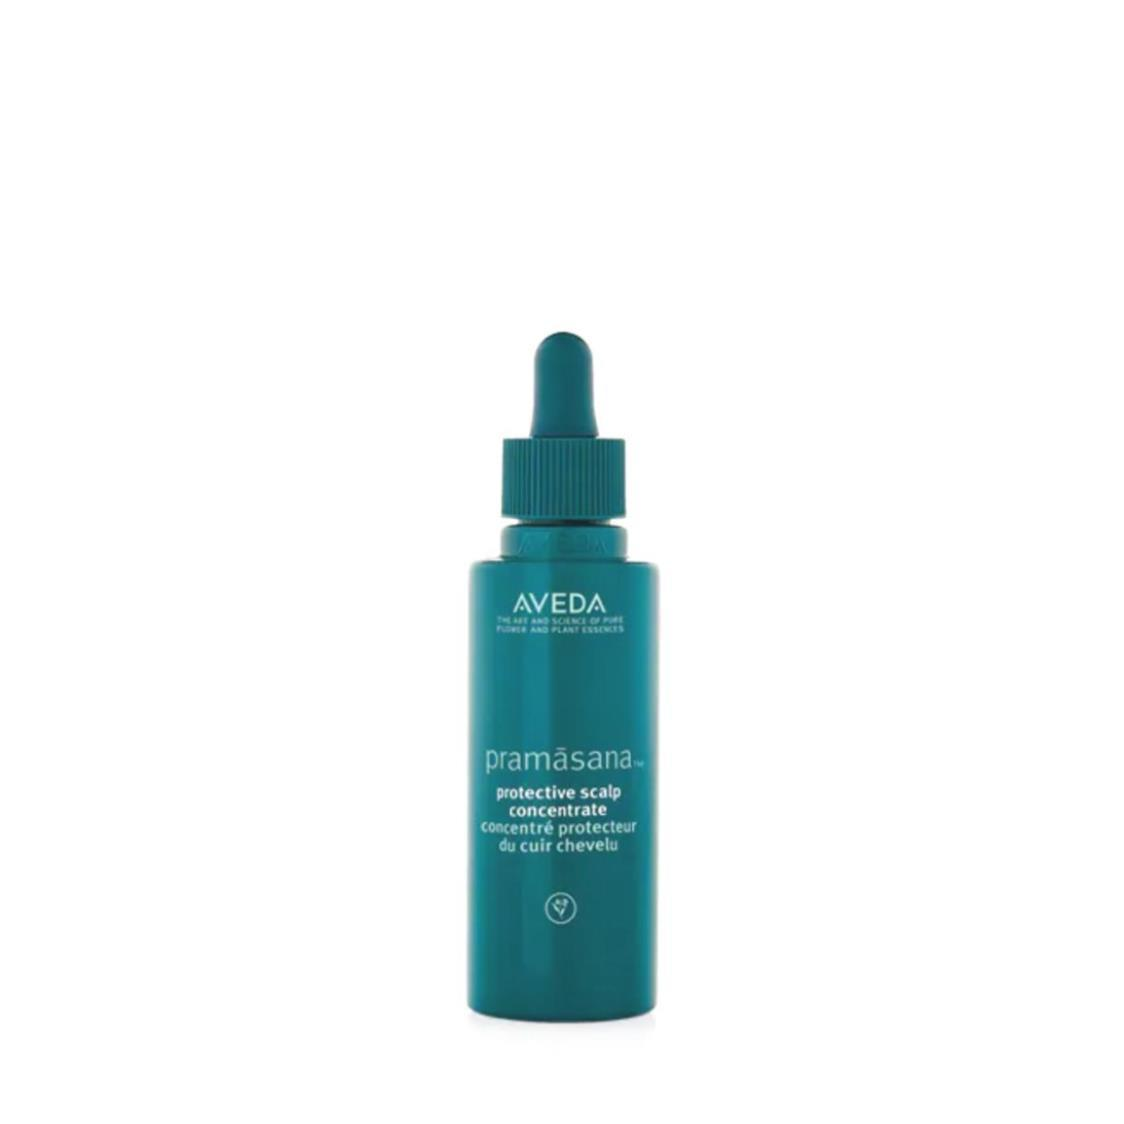 PramsanaProtective Scalp Concentrate 75ml